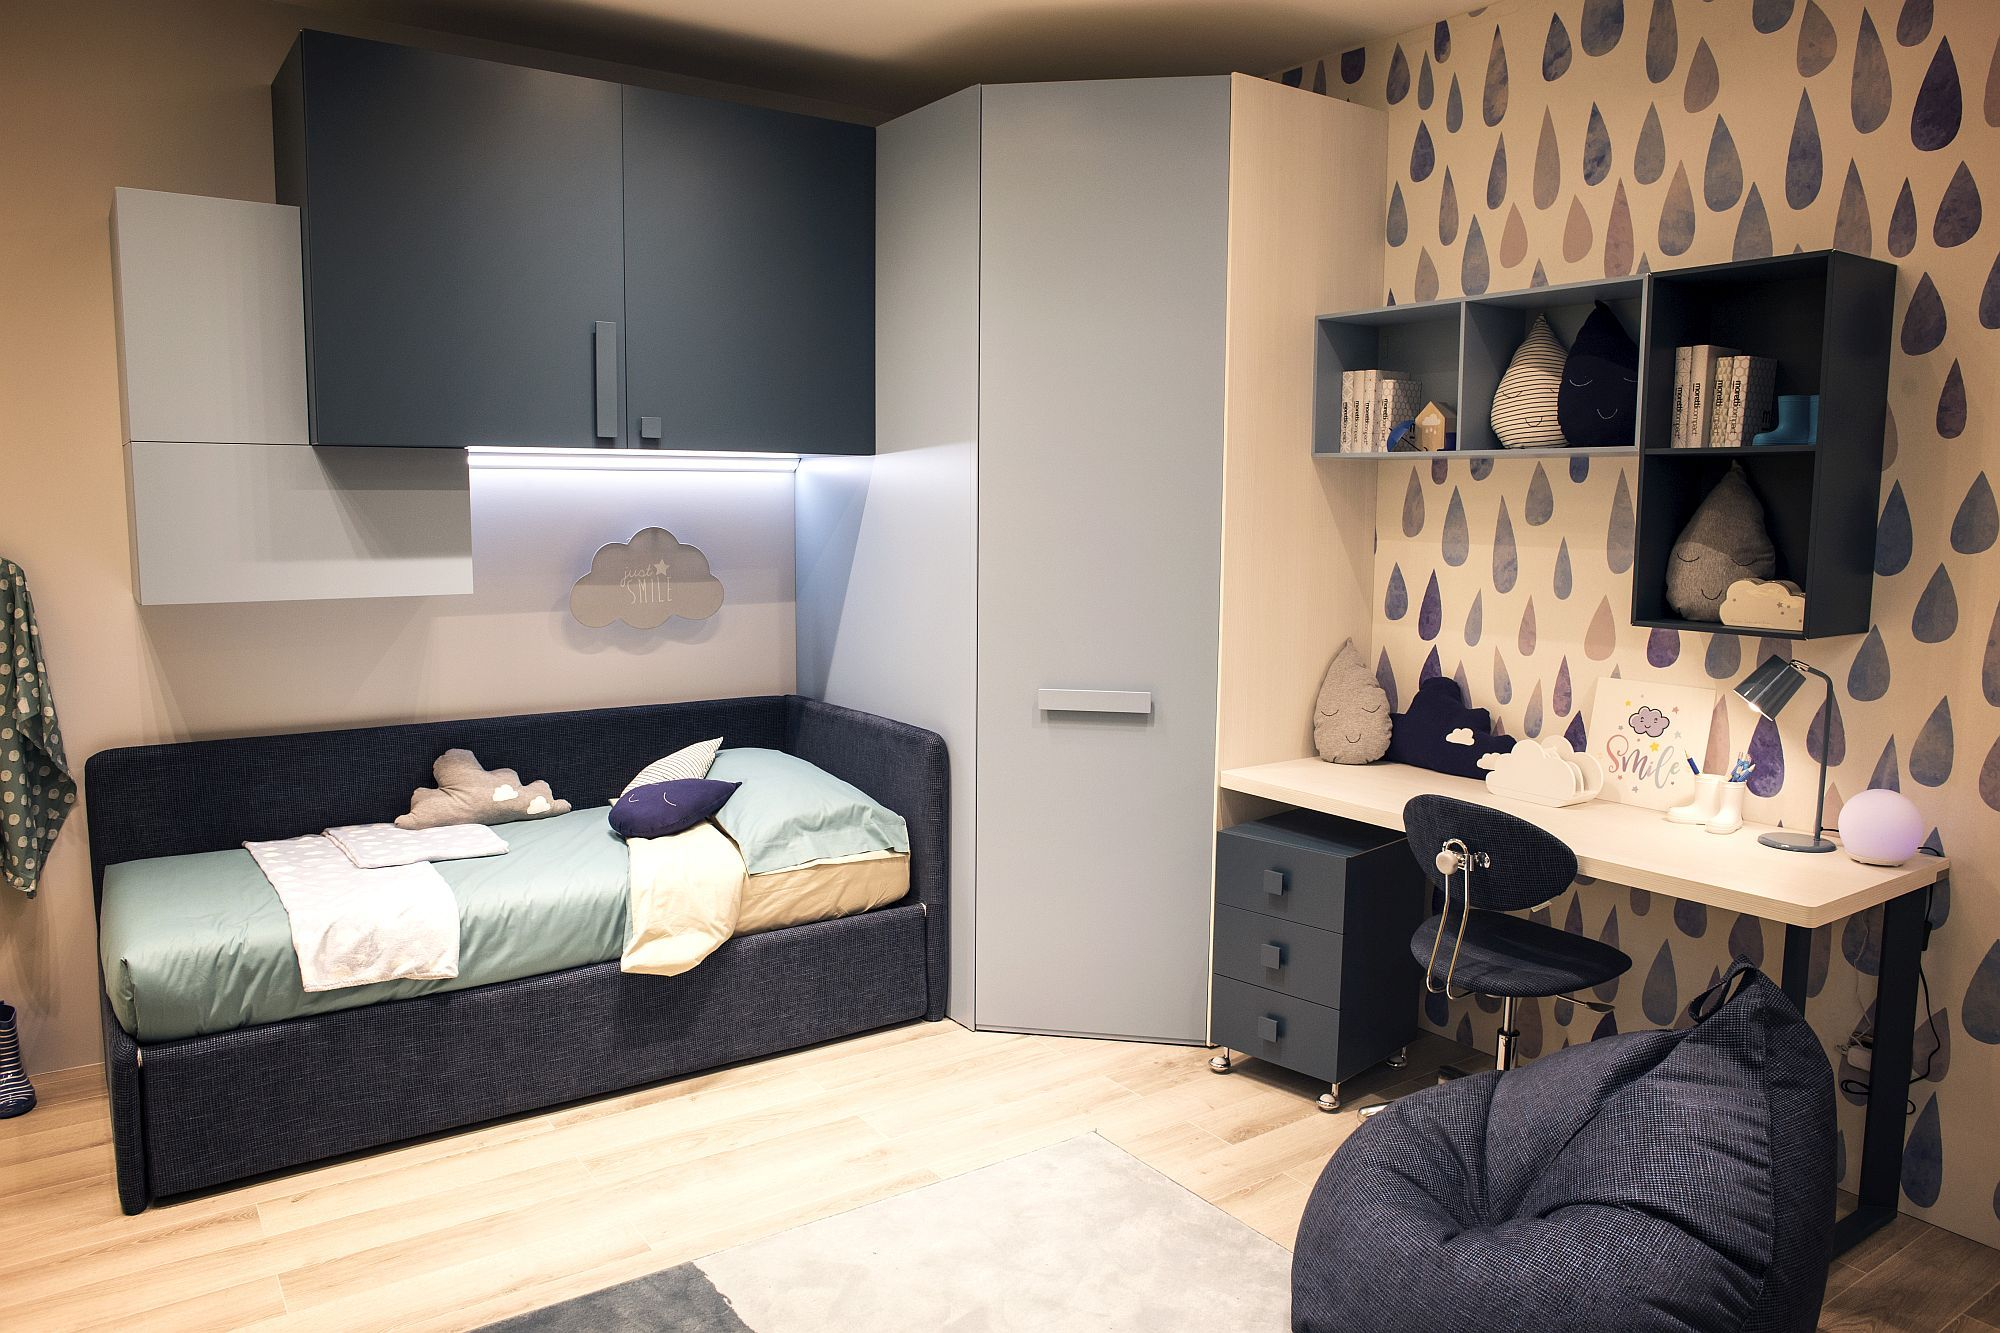 Pin On Kids Rooms Interior design youth bedroom